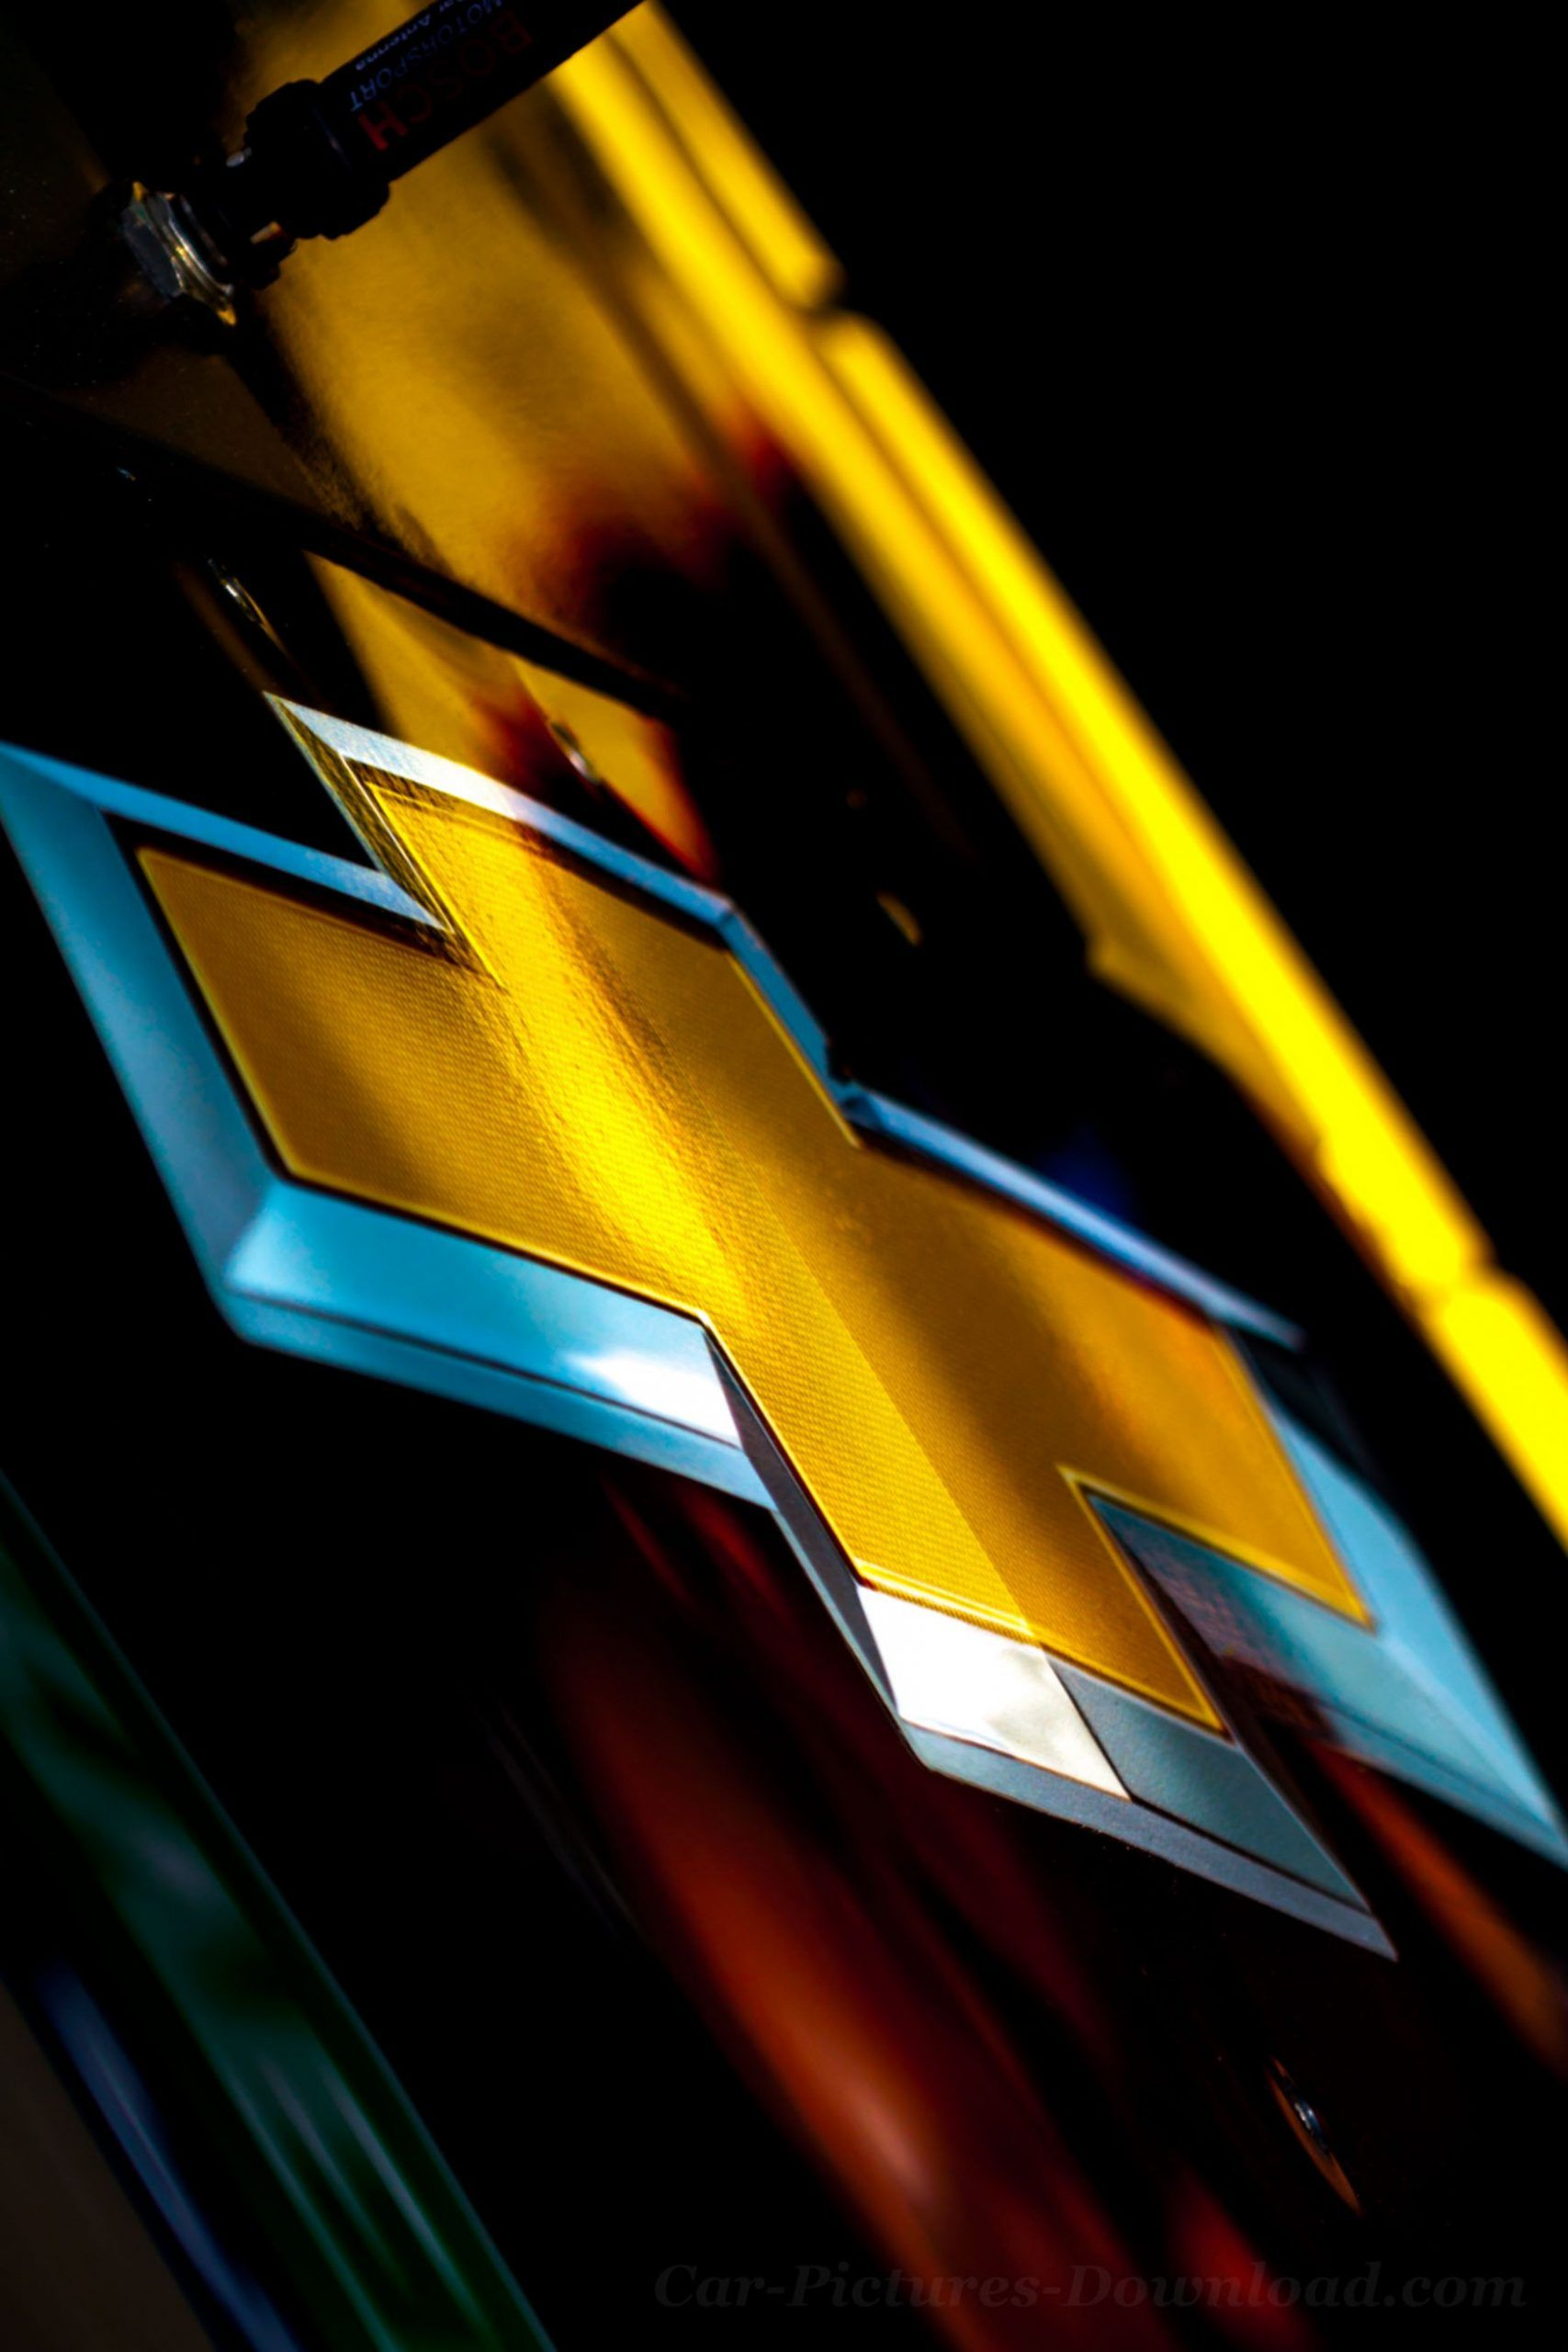 Why Is Chevy Logo Wallpaper So Famous Phone Wallpaper Wallpaper Cool Cars